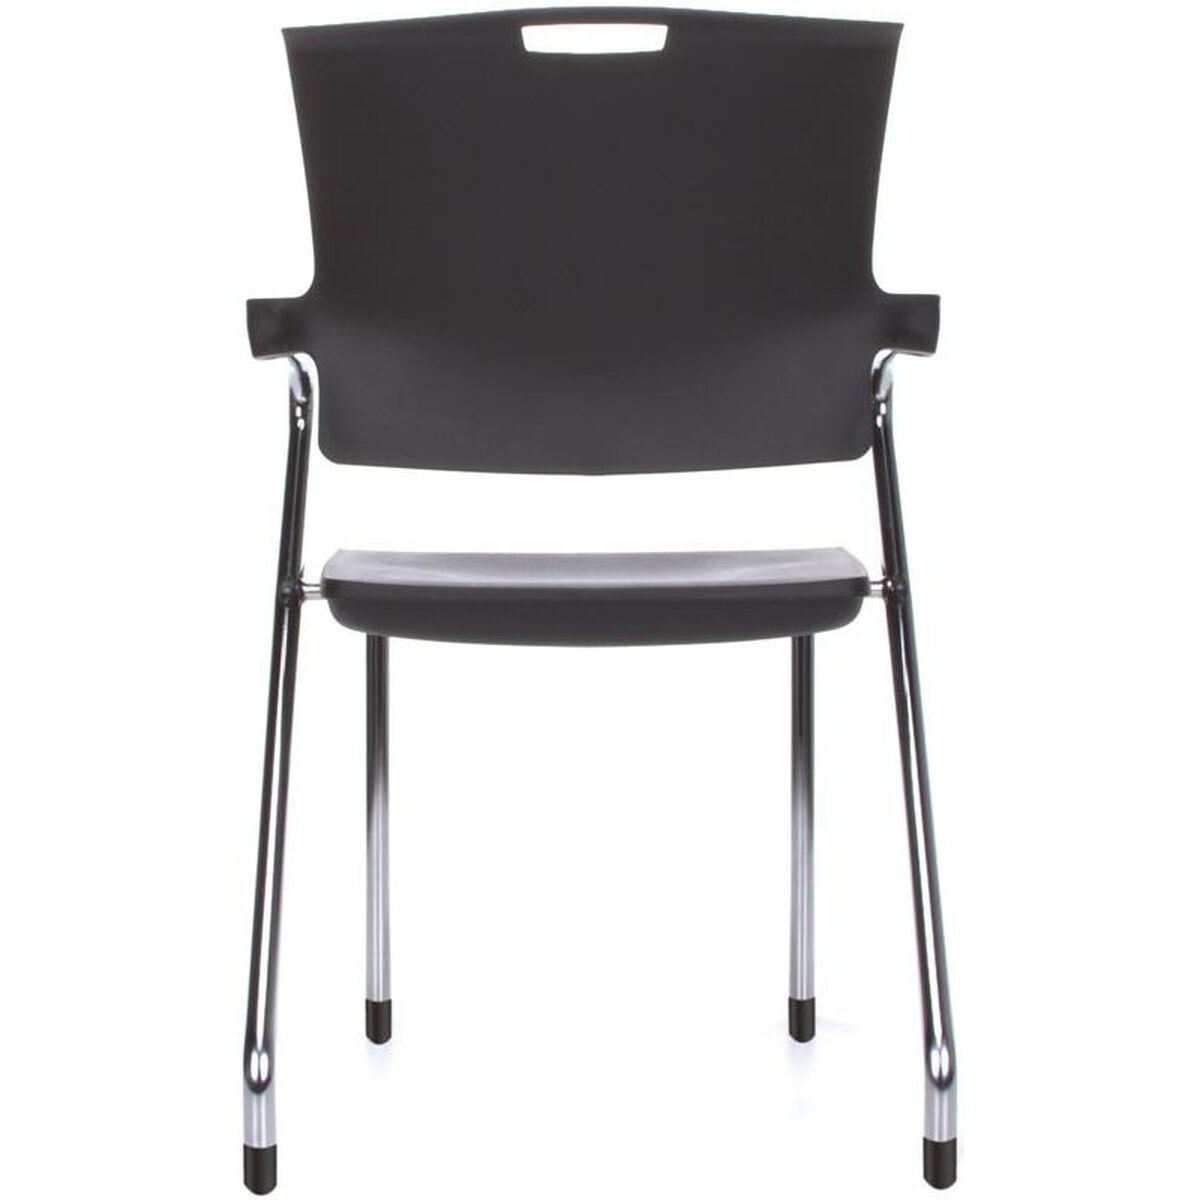 Ofm 304 P P02 Mfo 304 P P02 Stackchairs4less Com